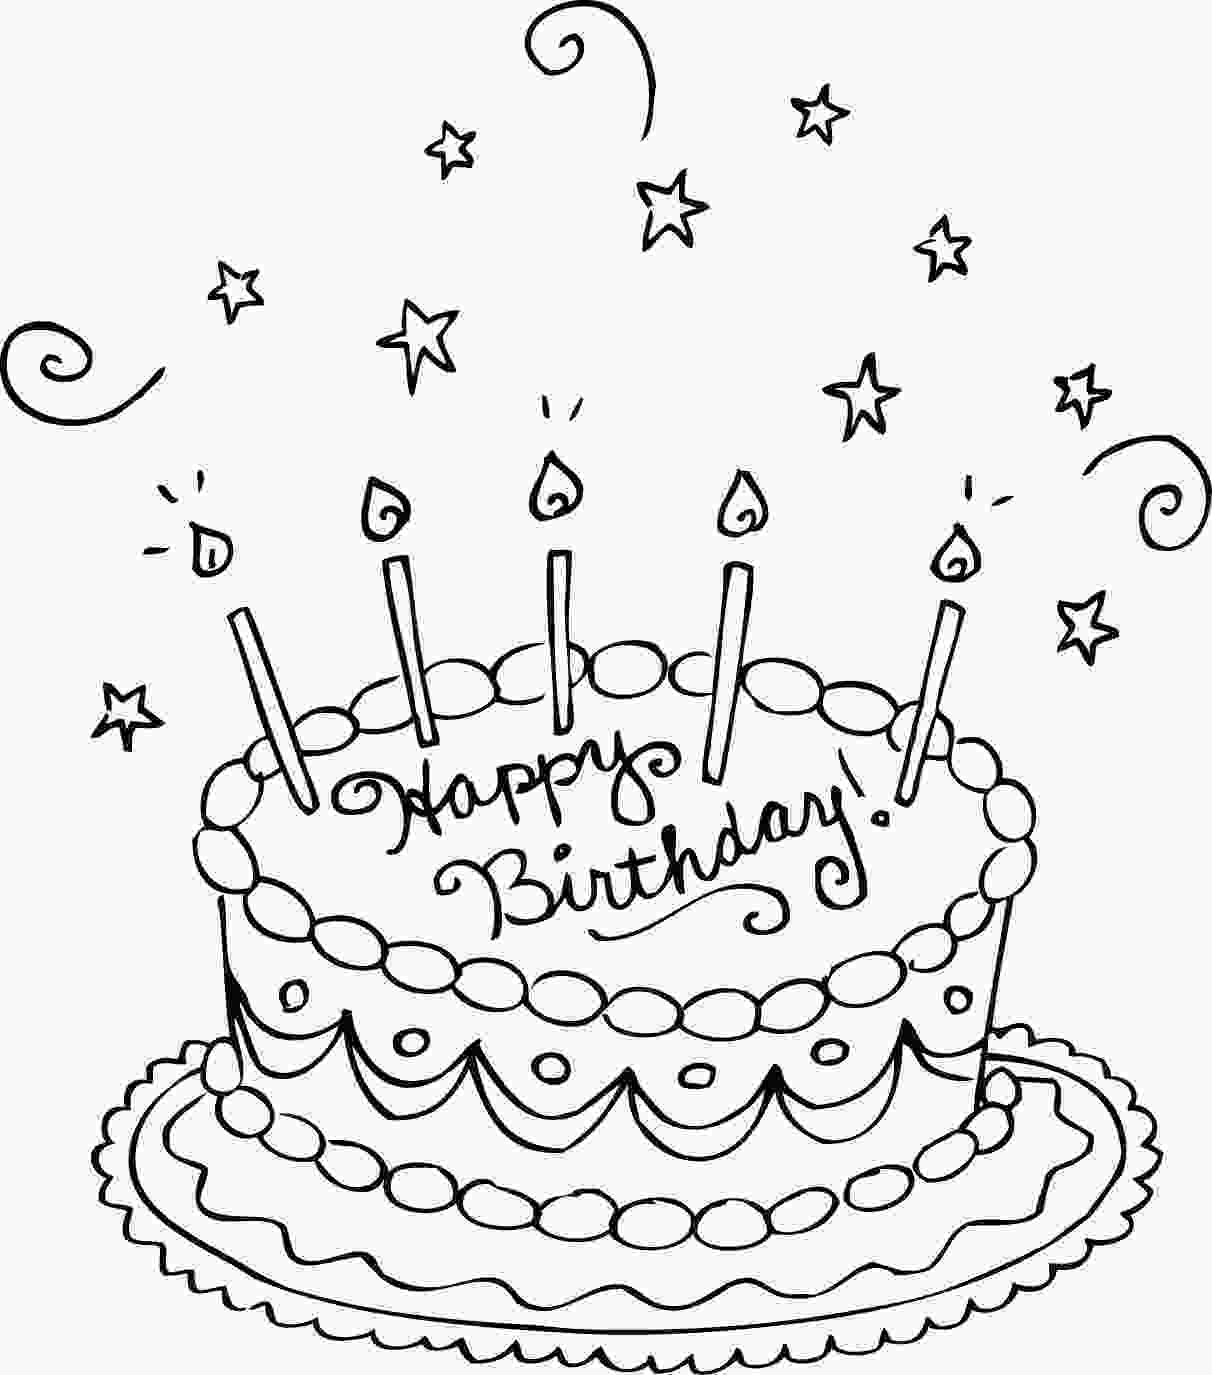 picture of cake to color free printable birthday cake coloring pages for kids 2